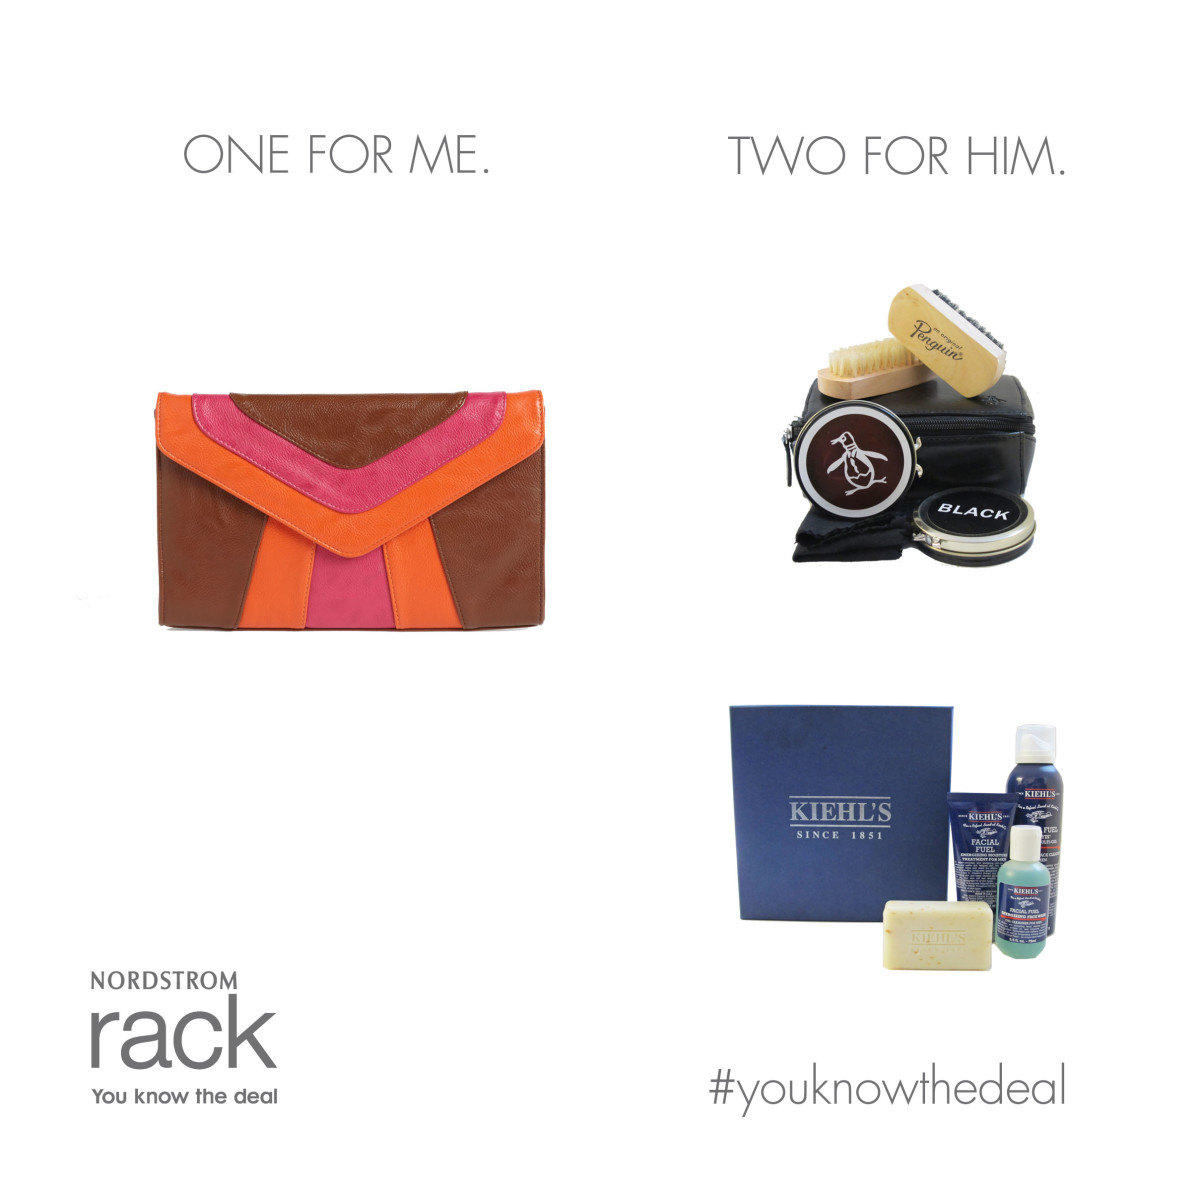 Nordstrom-Rack-Fathers-Day-Gifts-One-for-Me